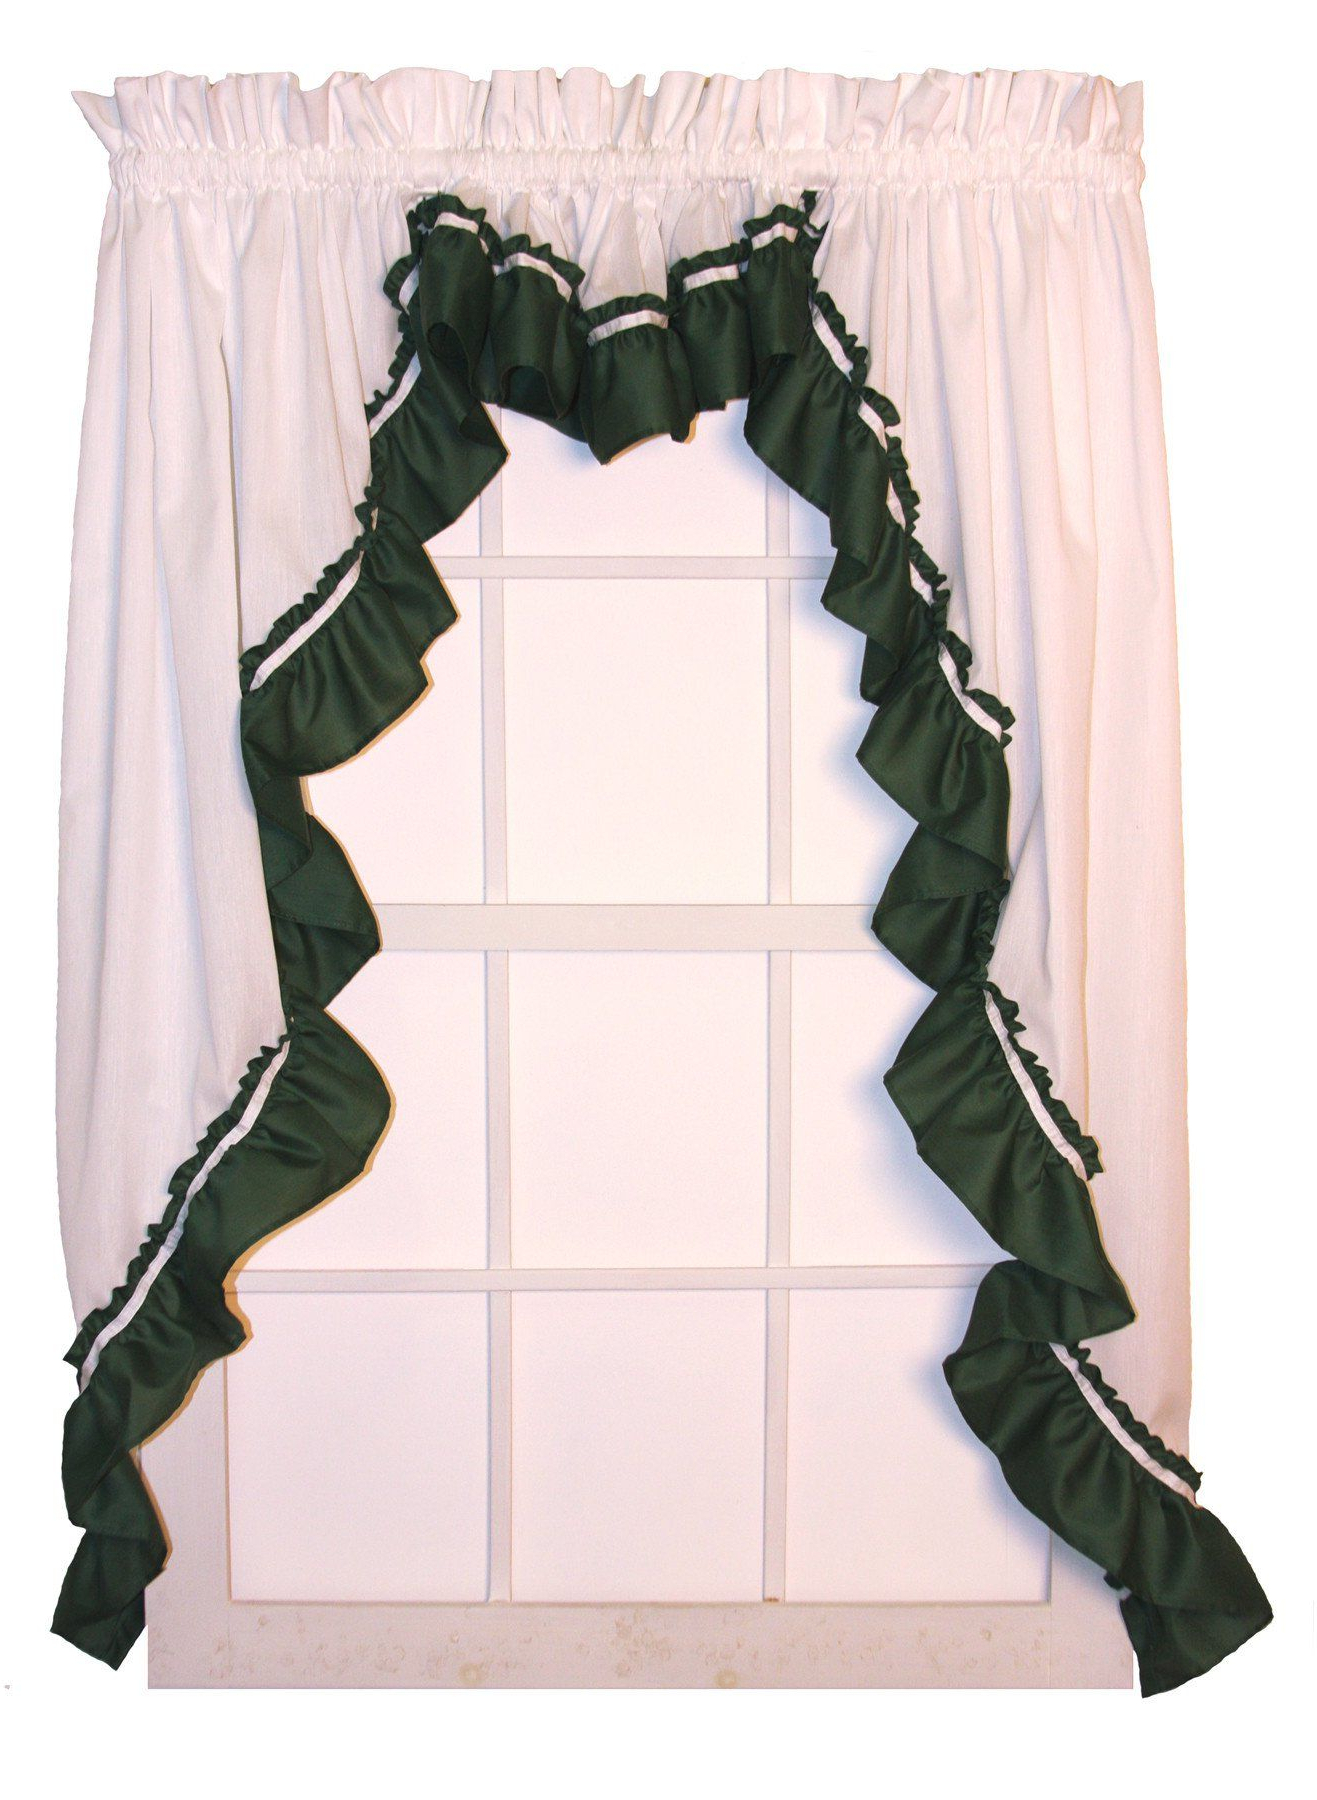 Most Recent Lynn 3 Piece White Ruffled Swags & Filler Valance Window In Spring Daisy Tiered Curtain 3 Piece Sets (View 12 of 20)